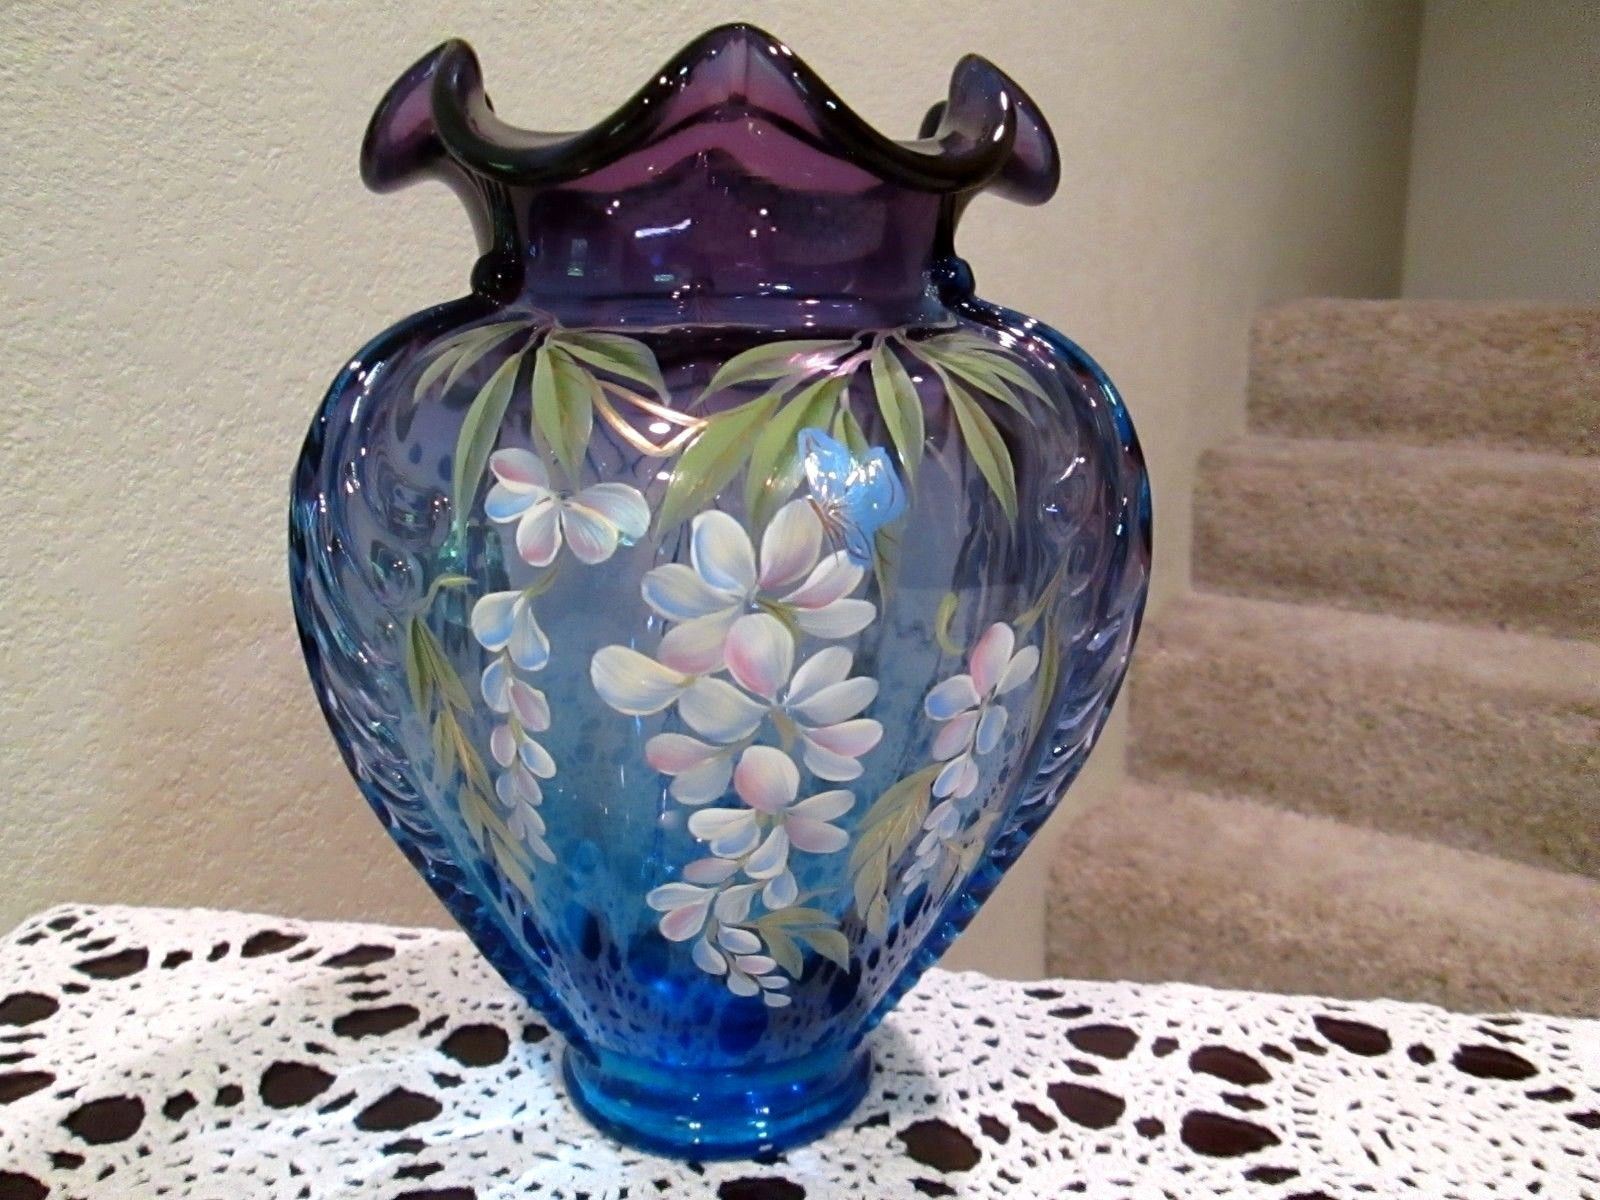 FENTON MULBERRY FEATHER VASE HAND PAINTED LIMITED EDITION 118/1715 NO RESERVE https://t.co/h6LVLMs3Ce https://t.co/dLfyhOsJik